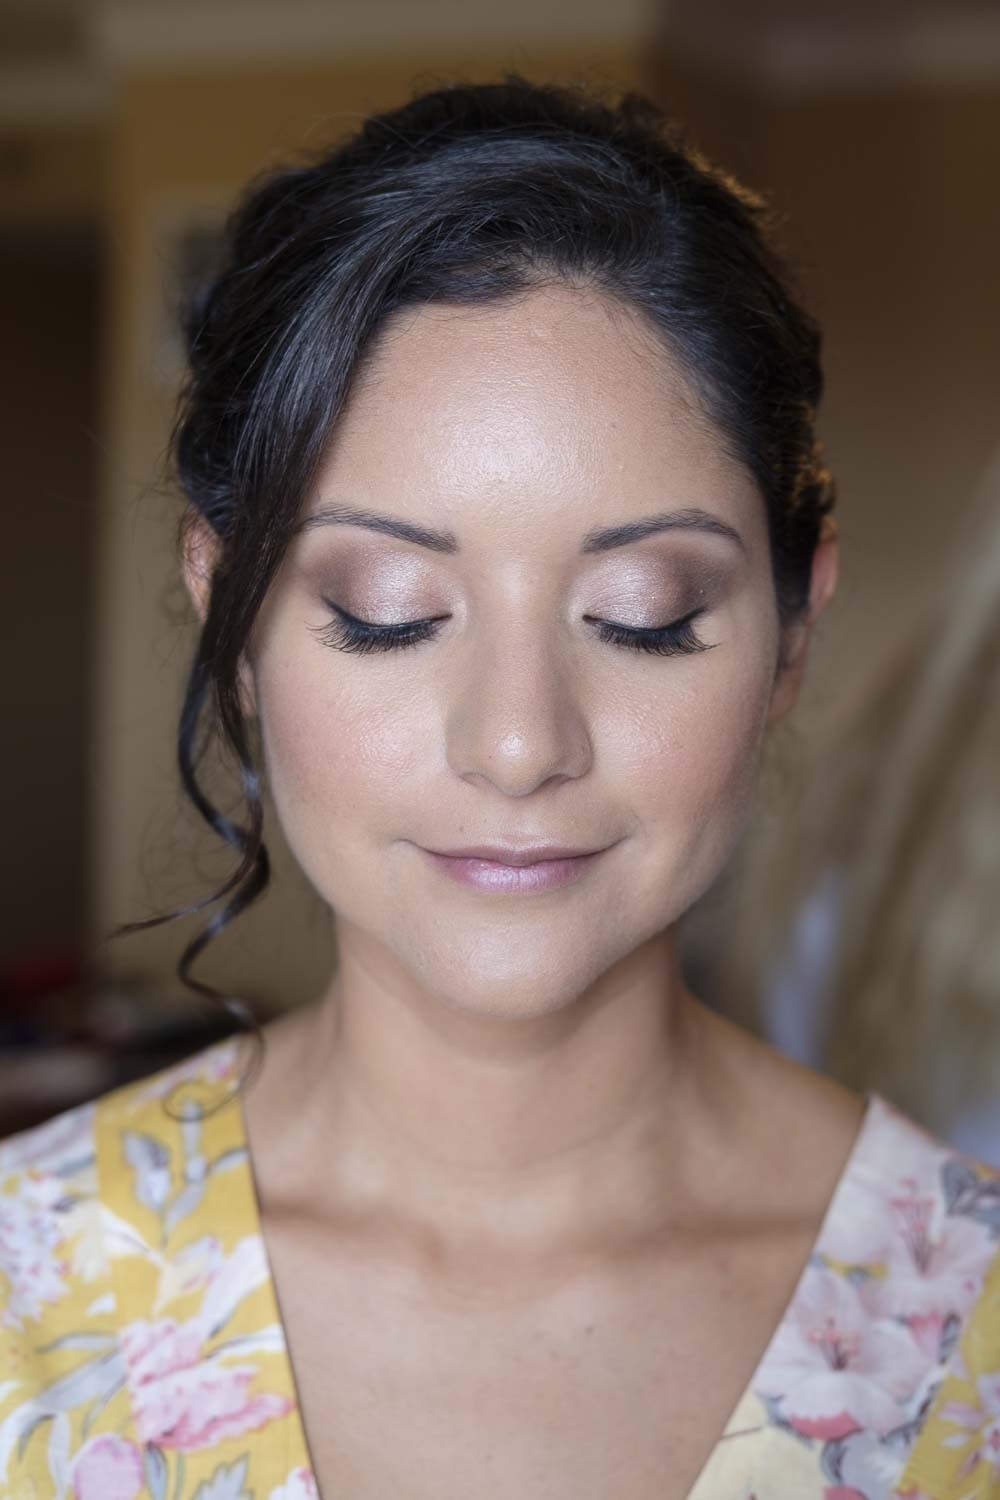 beauty affair bridal makeup and hairstyle los angeles_2.JPG